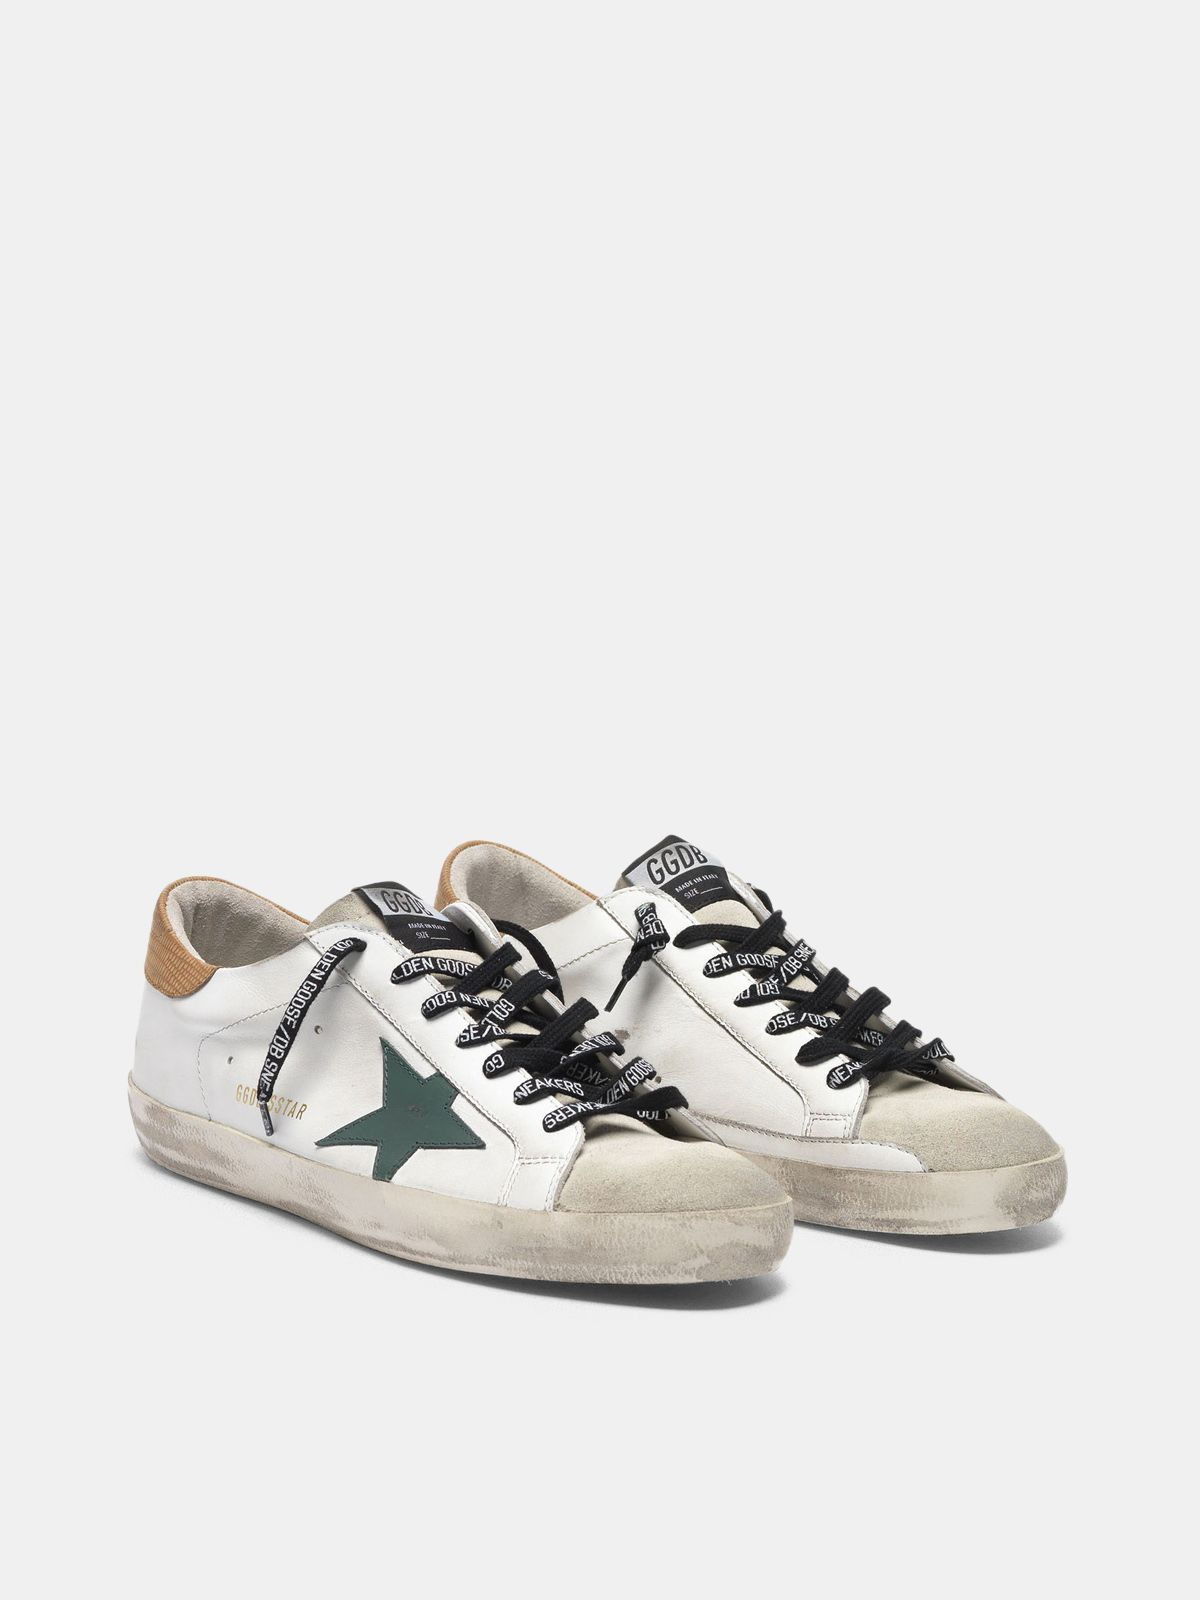 Golden Goose - Sneakers Super-Star bianche con talloncino stampa lucertolina in